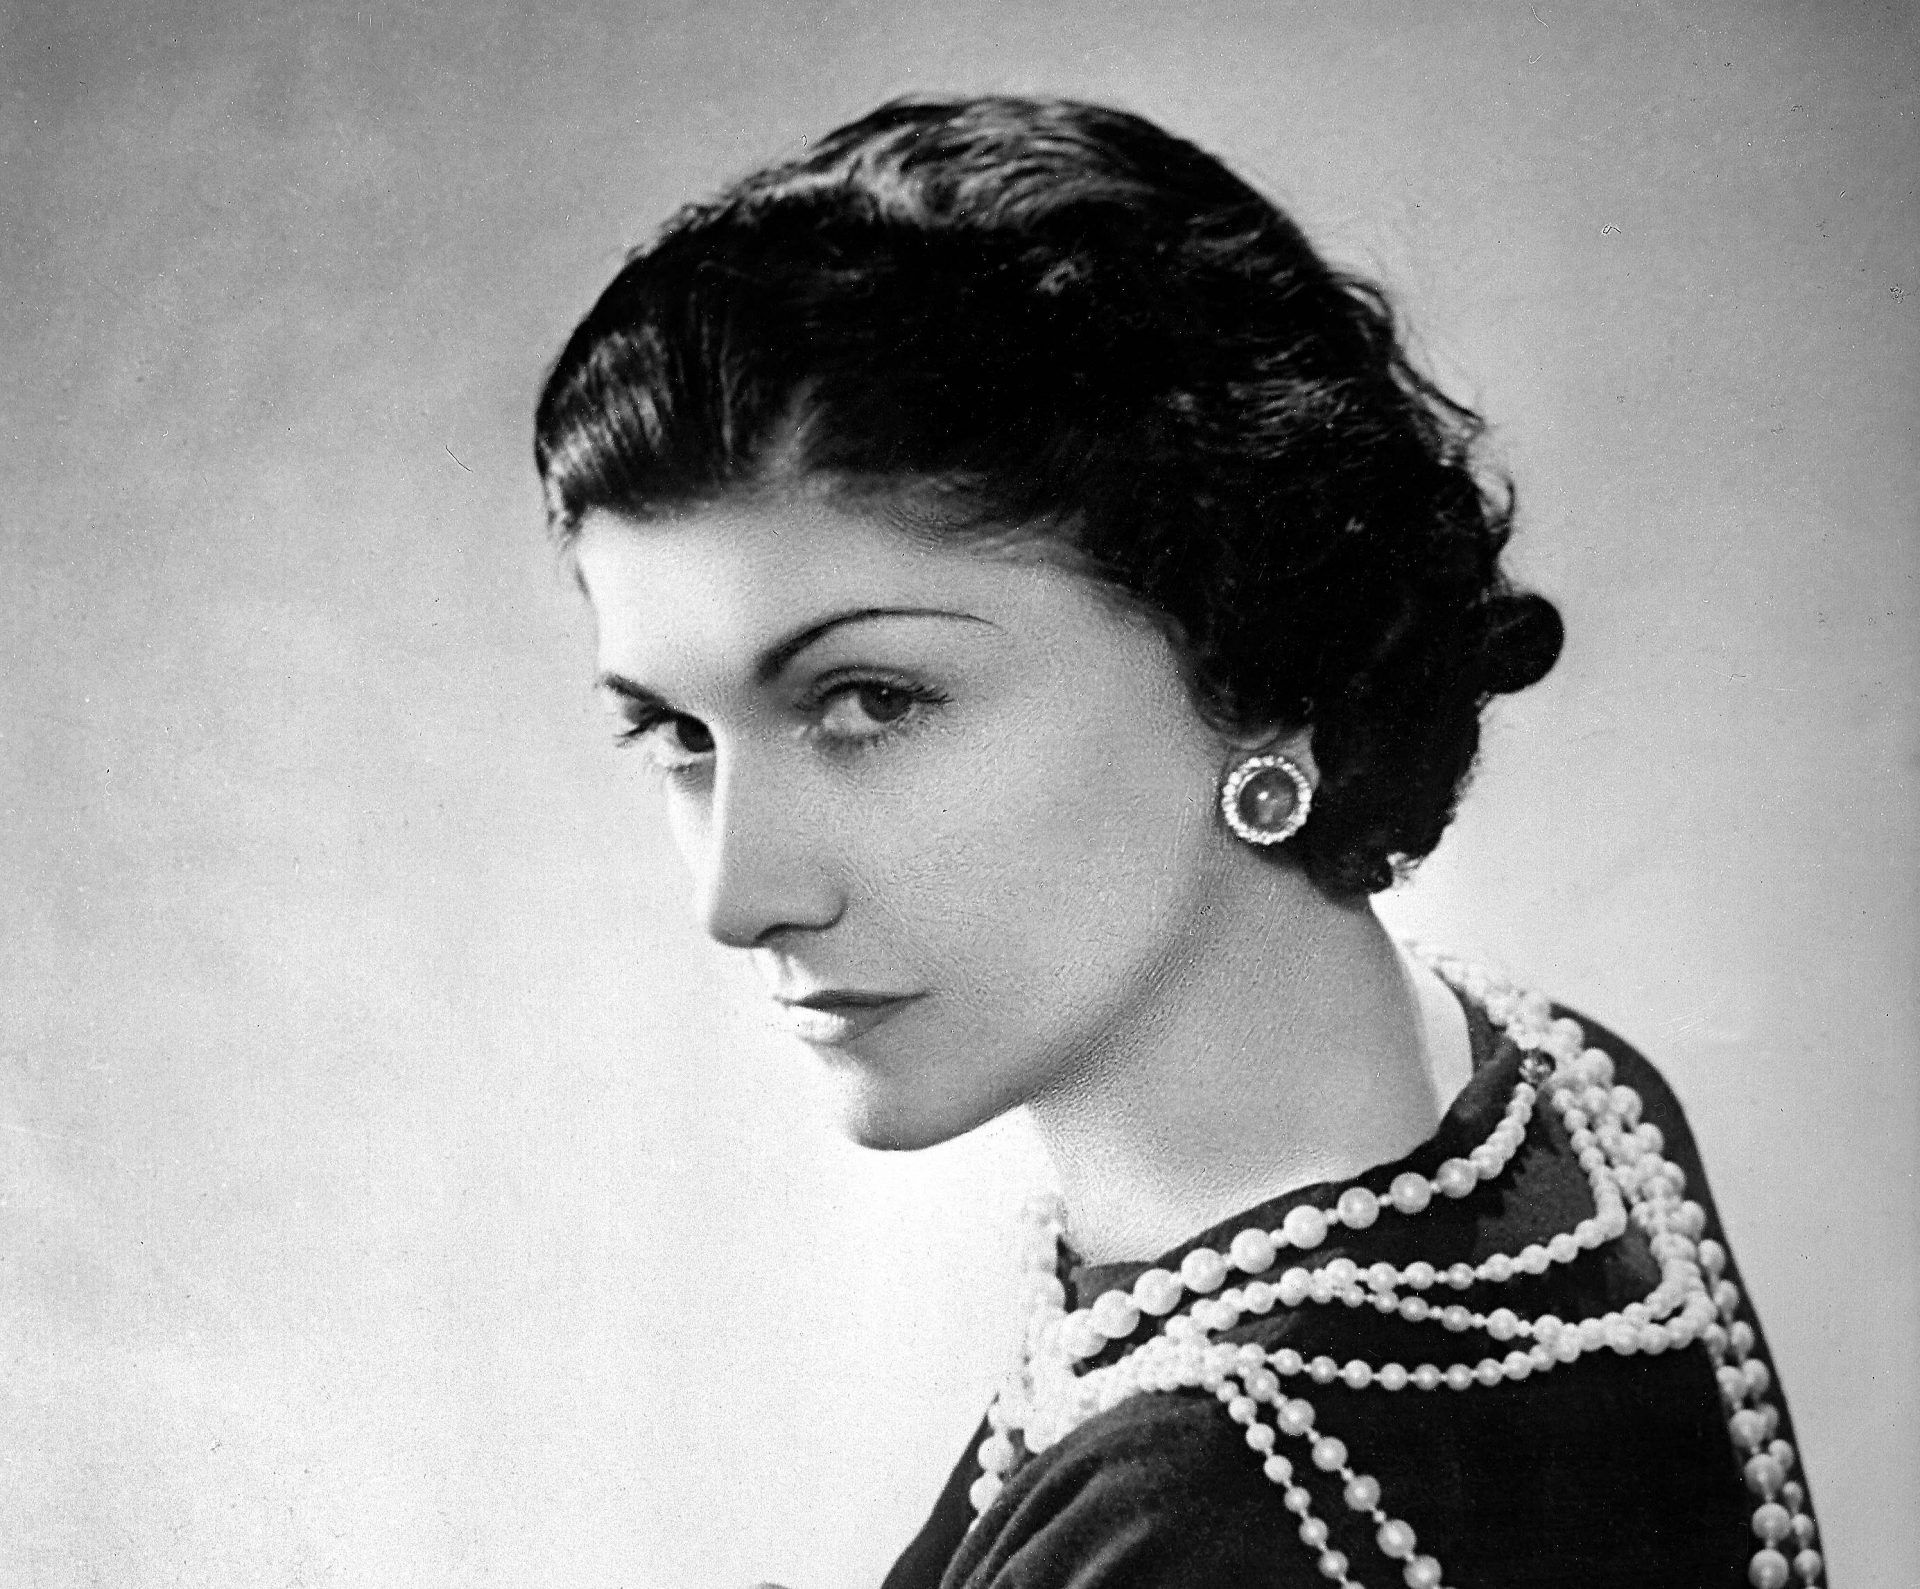 Coco Chanel, French couturier. Paris, 1936.